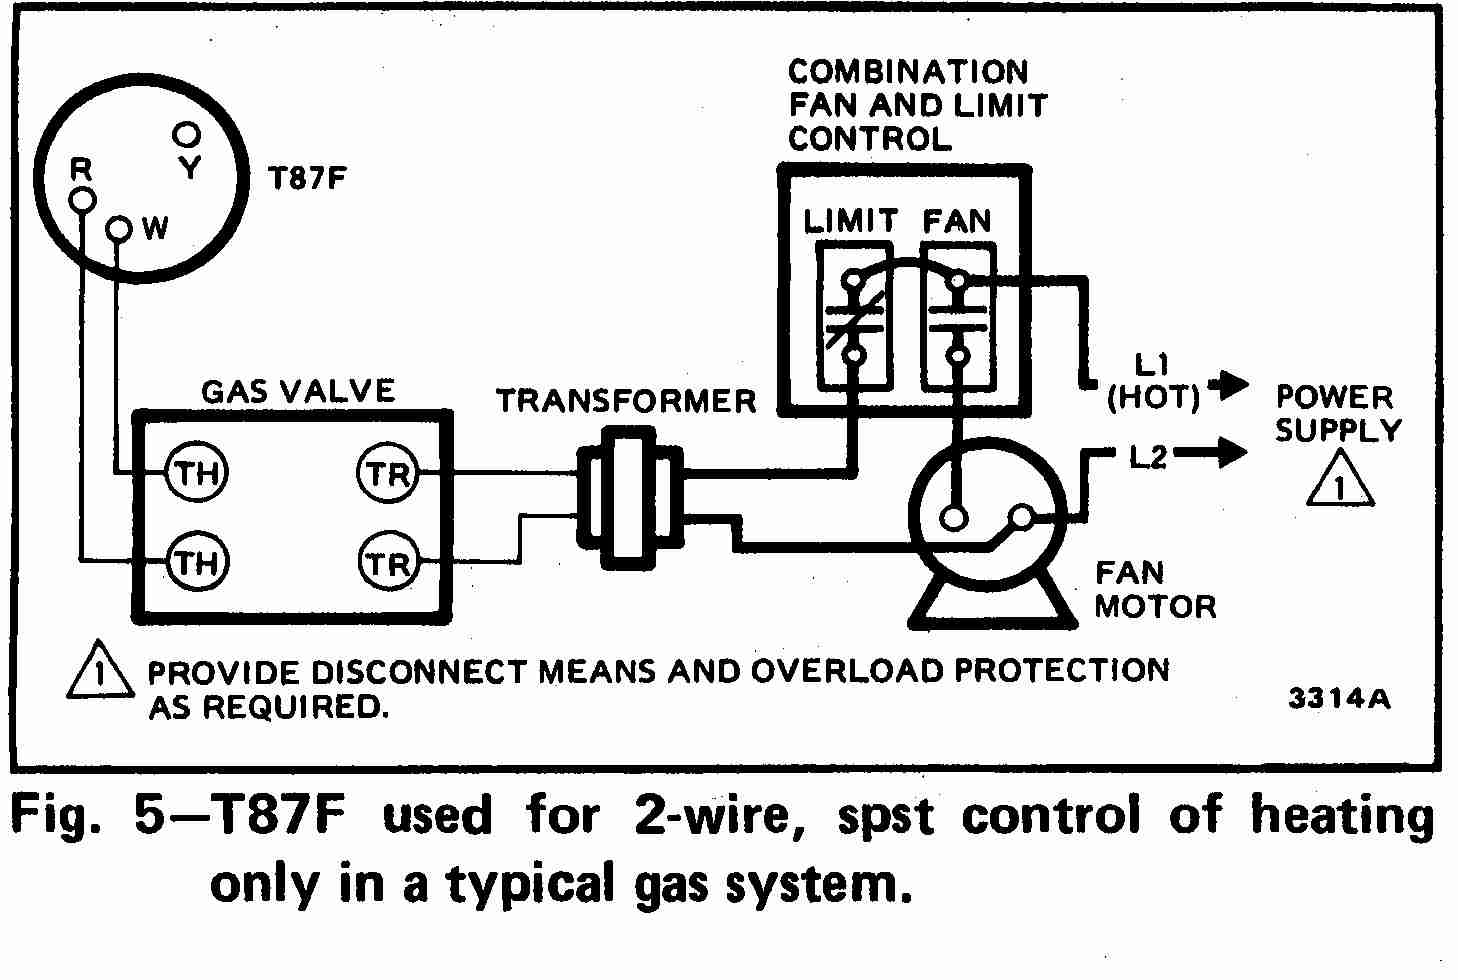 Room thermostat wiring diagrams for hvac systems honeywell t87f thermostat wiring diagram for 2 wire spst control of heating only in swarovskicordoba